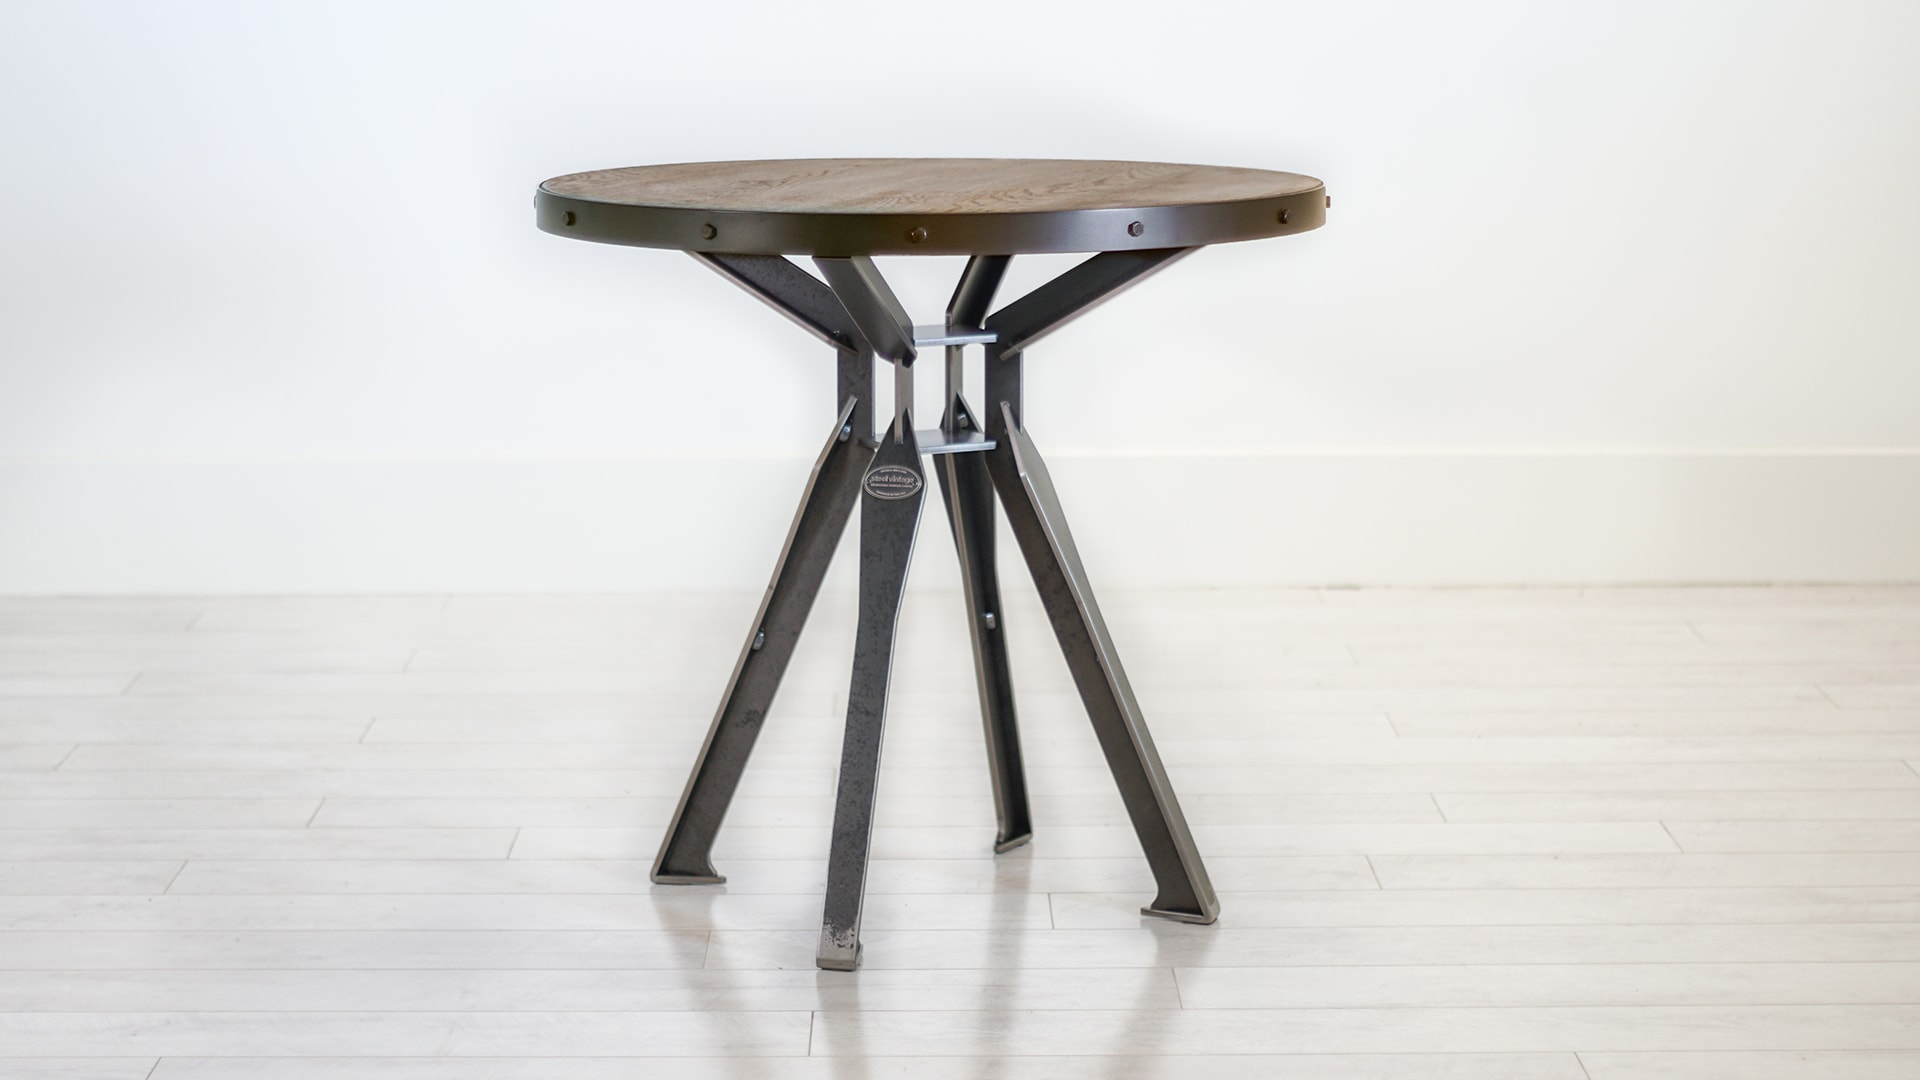 The Ironmaster Table